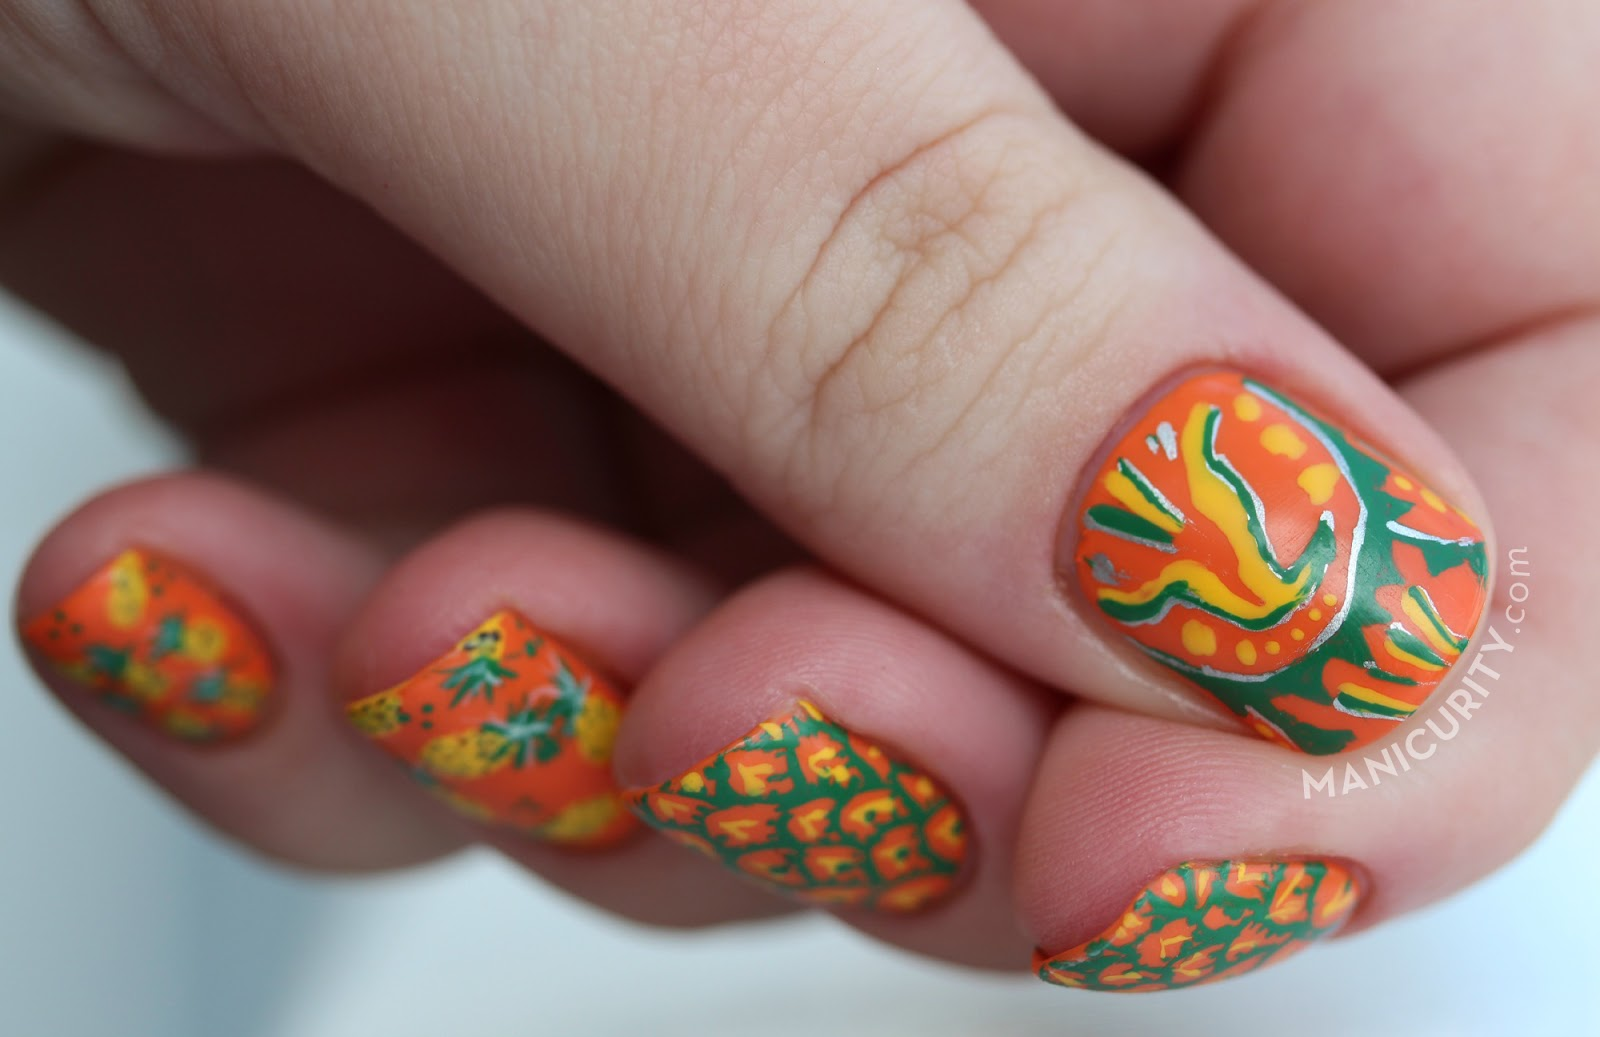 The Digit-al Dozen does Brands: Jupiña Pineapple Soda Nails - freehand pineapple nail art | Manicurity.com